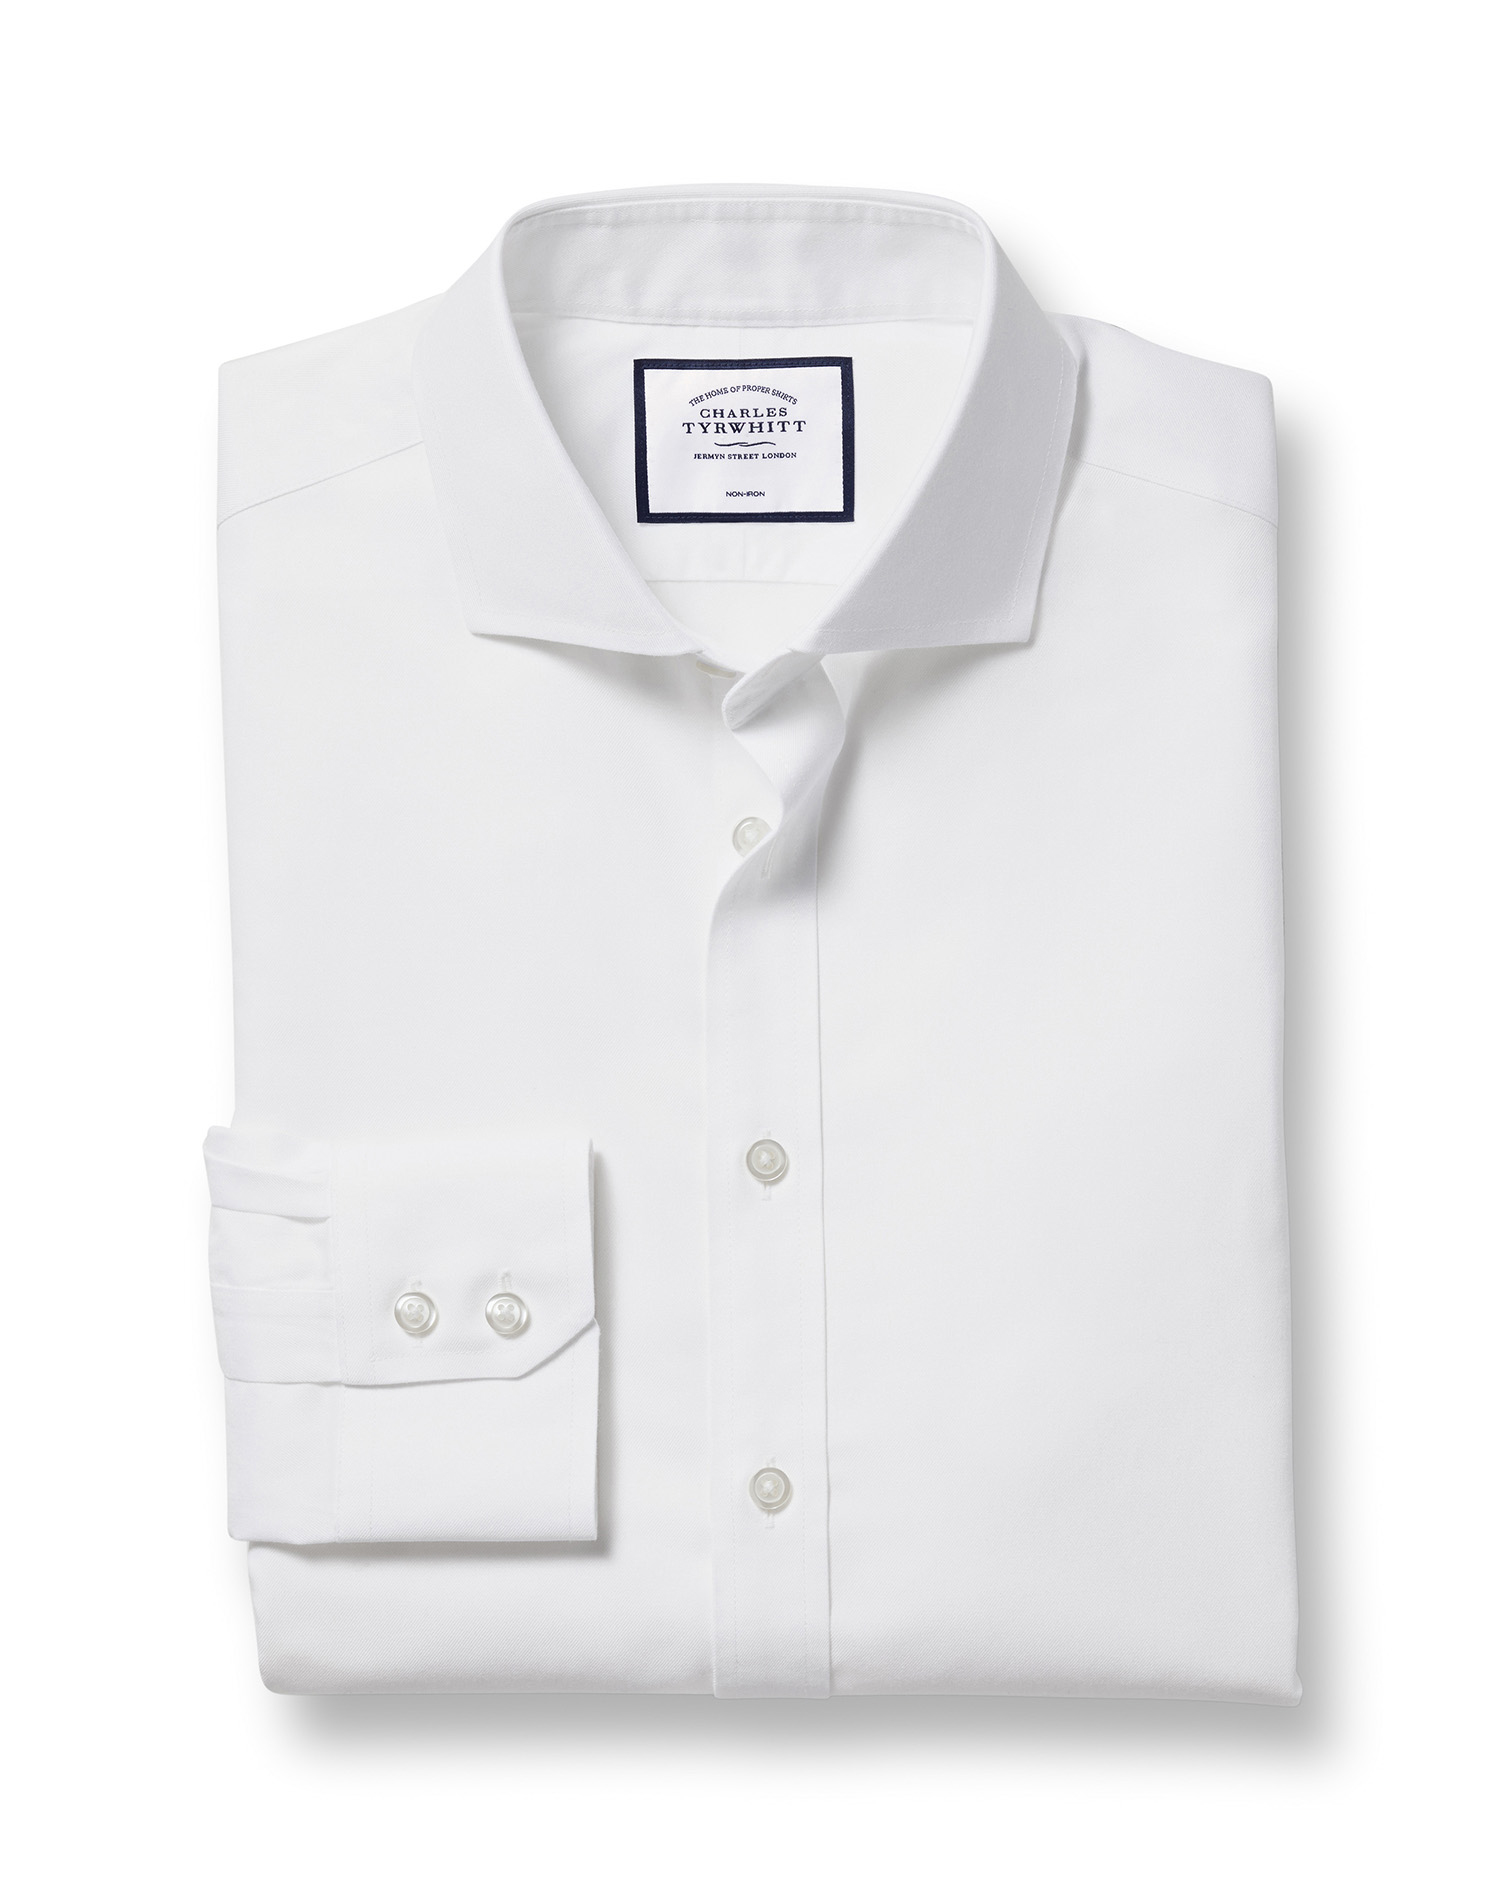 Slim Fit White Non-Iron Twill Extreme Cutaway Collar Cotton Formal Shirt Double Cuff Size 14.5/33 by